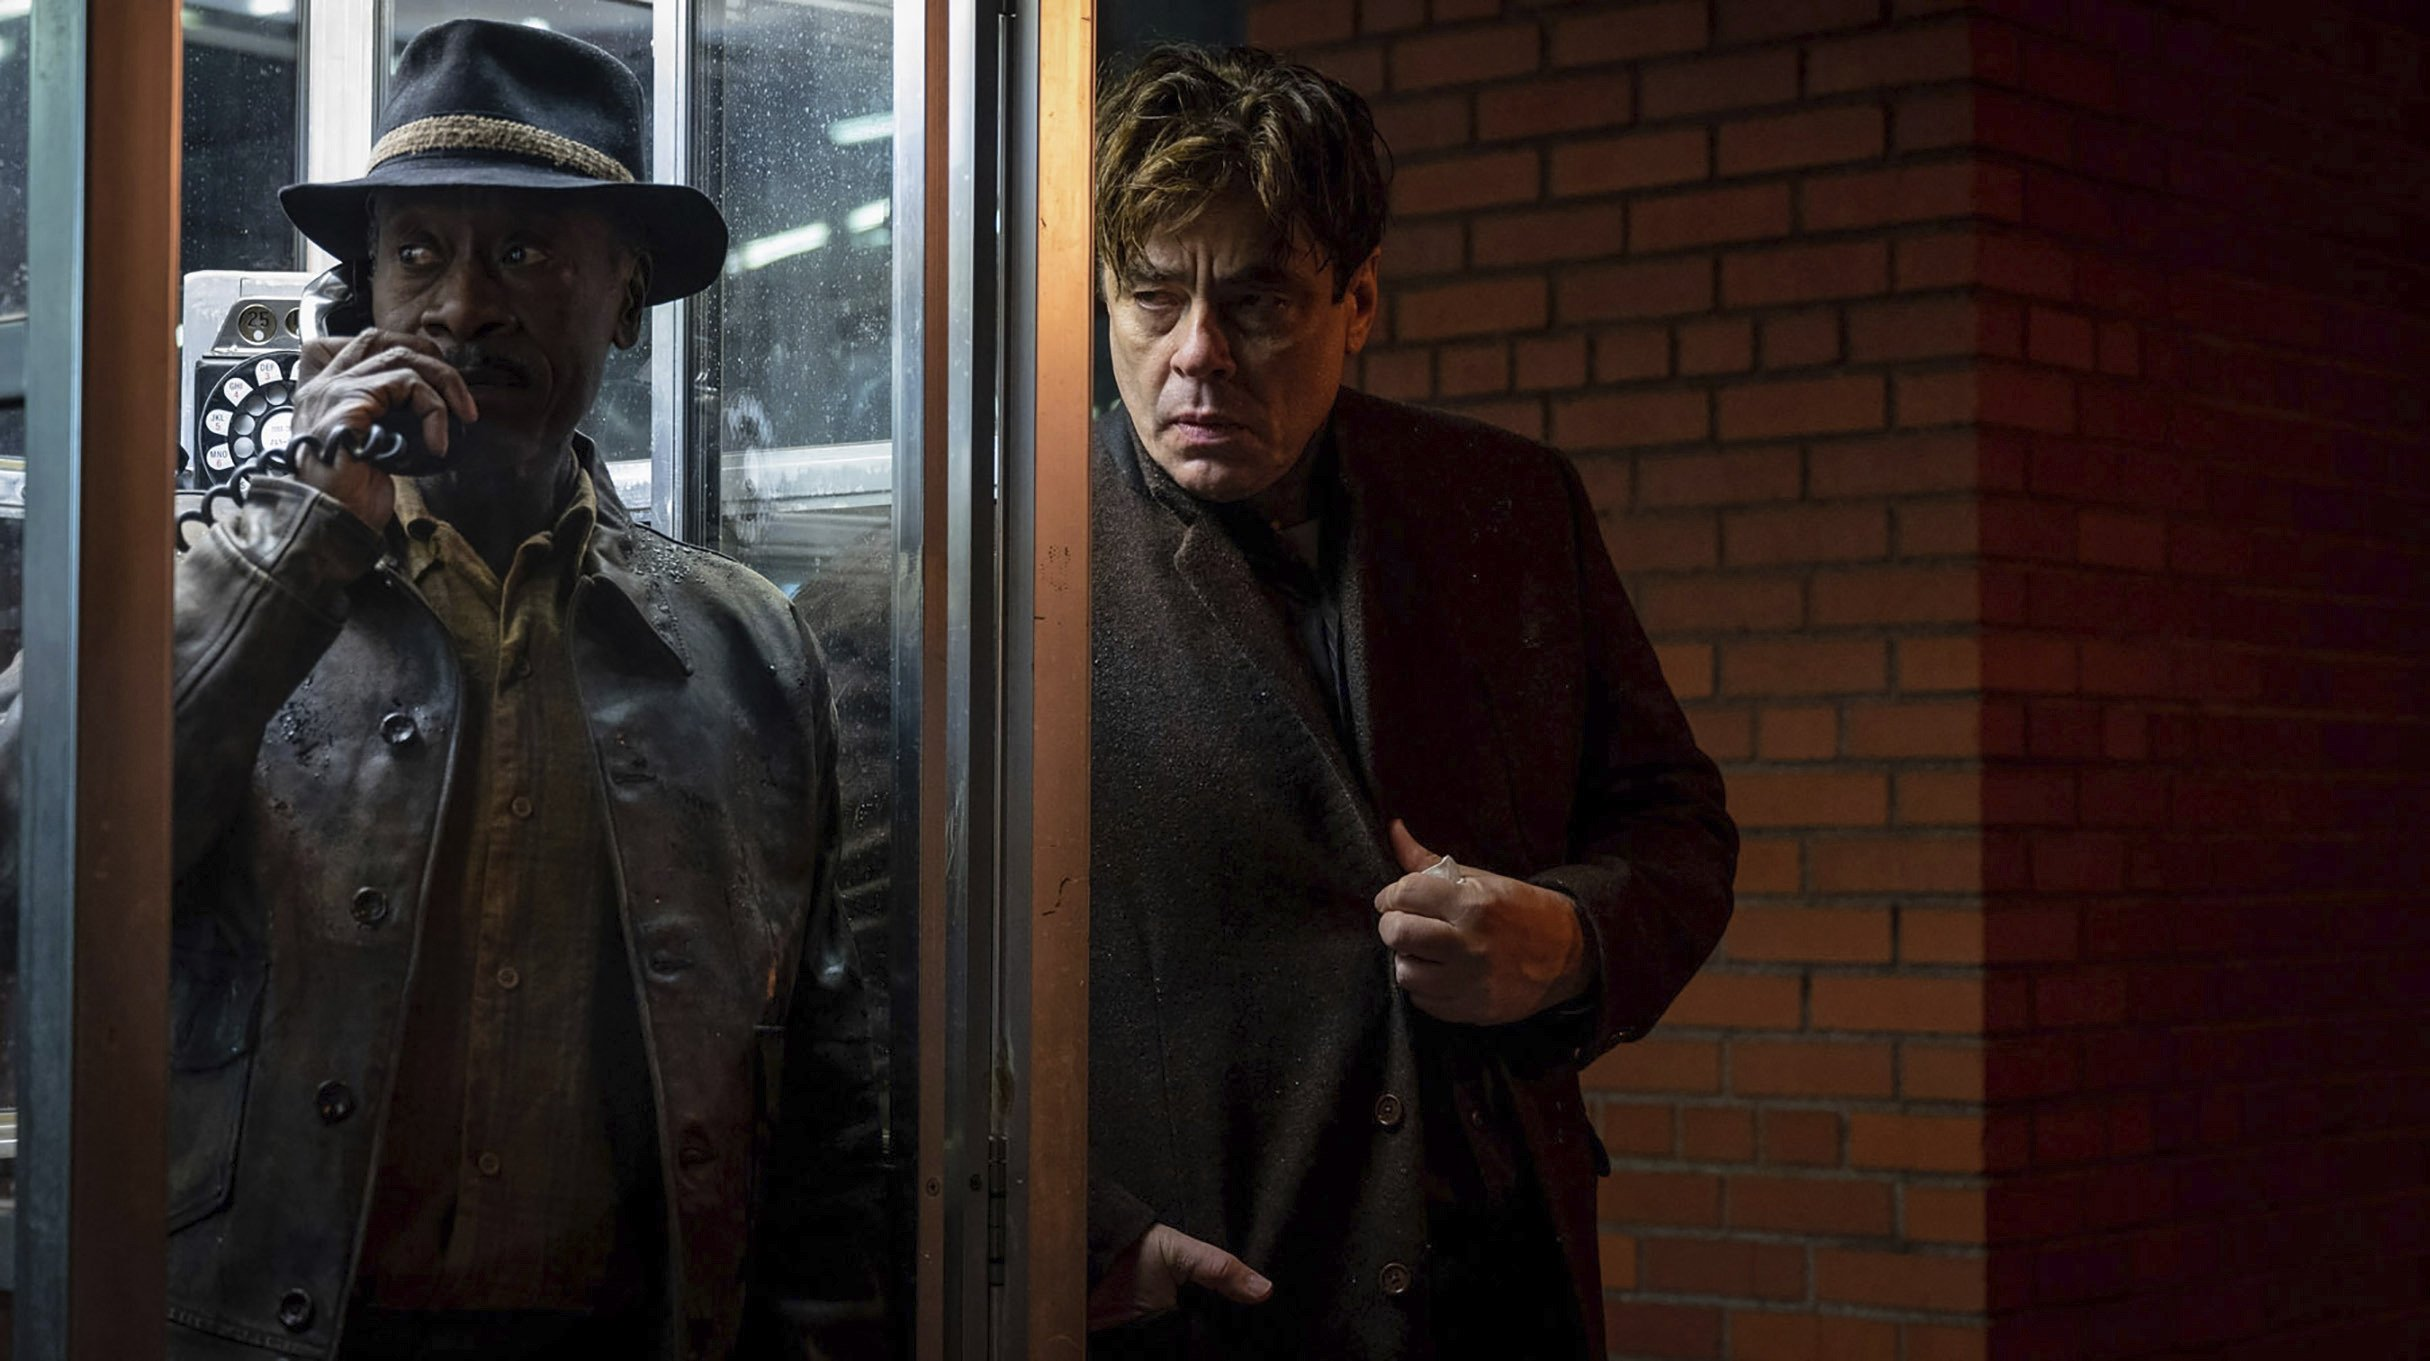 Don Cheadle (L) talks on the phone with Benicio del Toro alongside him, in a scene from Steven Soderbergh's 'No Sudden Move,' a film that will premiere as the centerpiece of the Tribeca Film Festival next month. (Warner Bros. Pictures via AP)